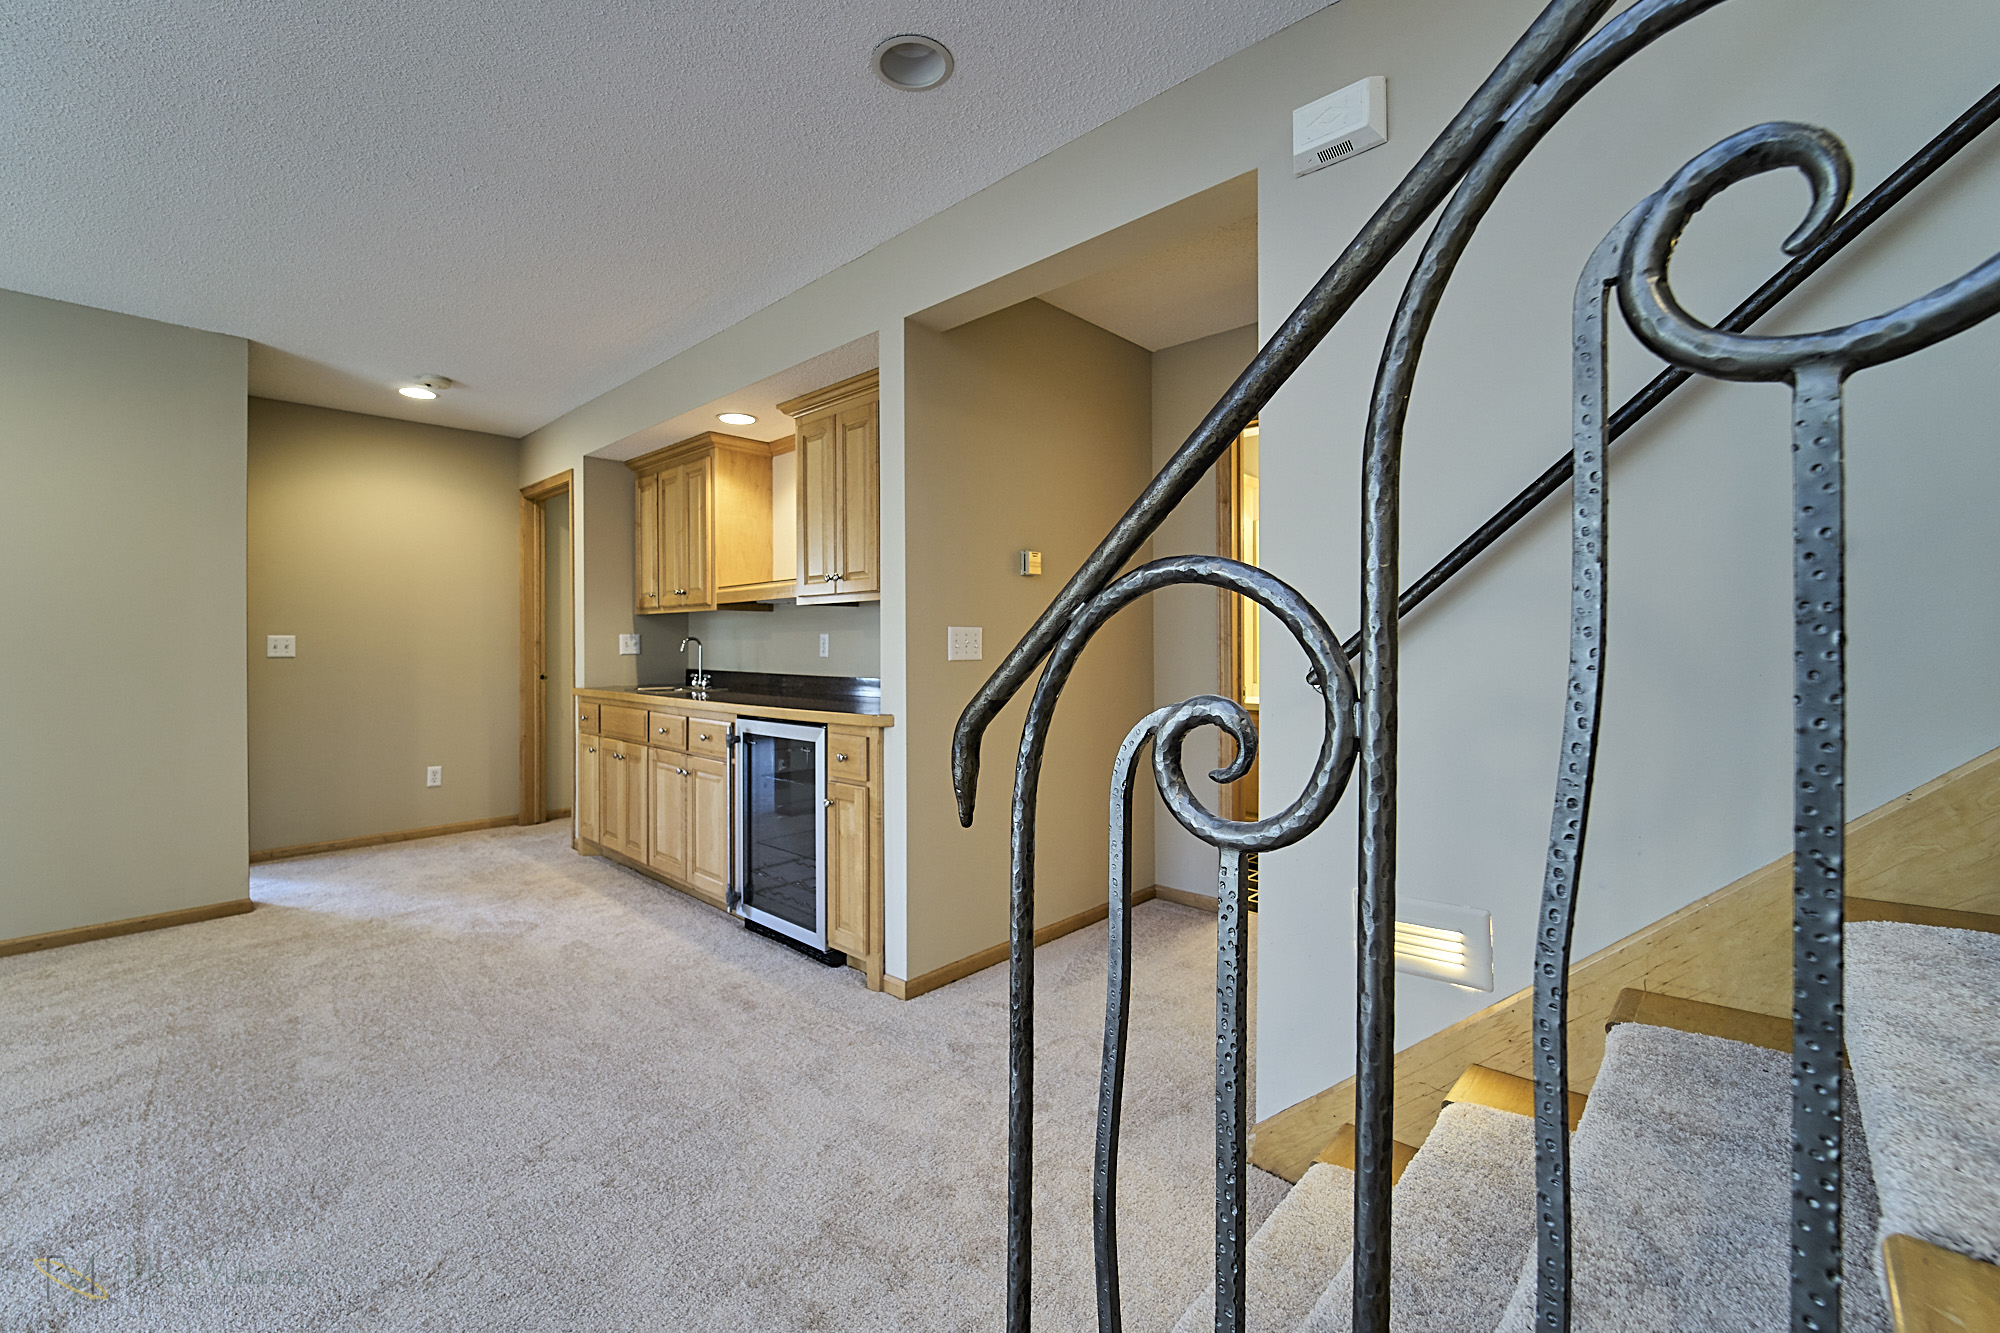 13770-Cottonwood-St-NW-Andover 17 FR.jpg